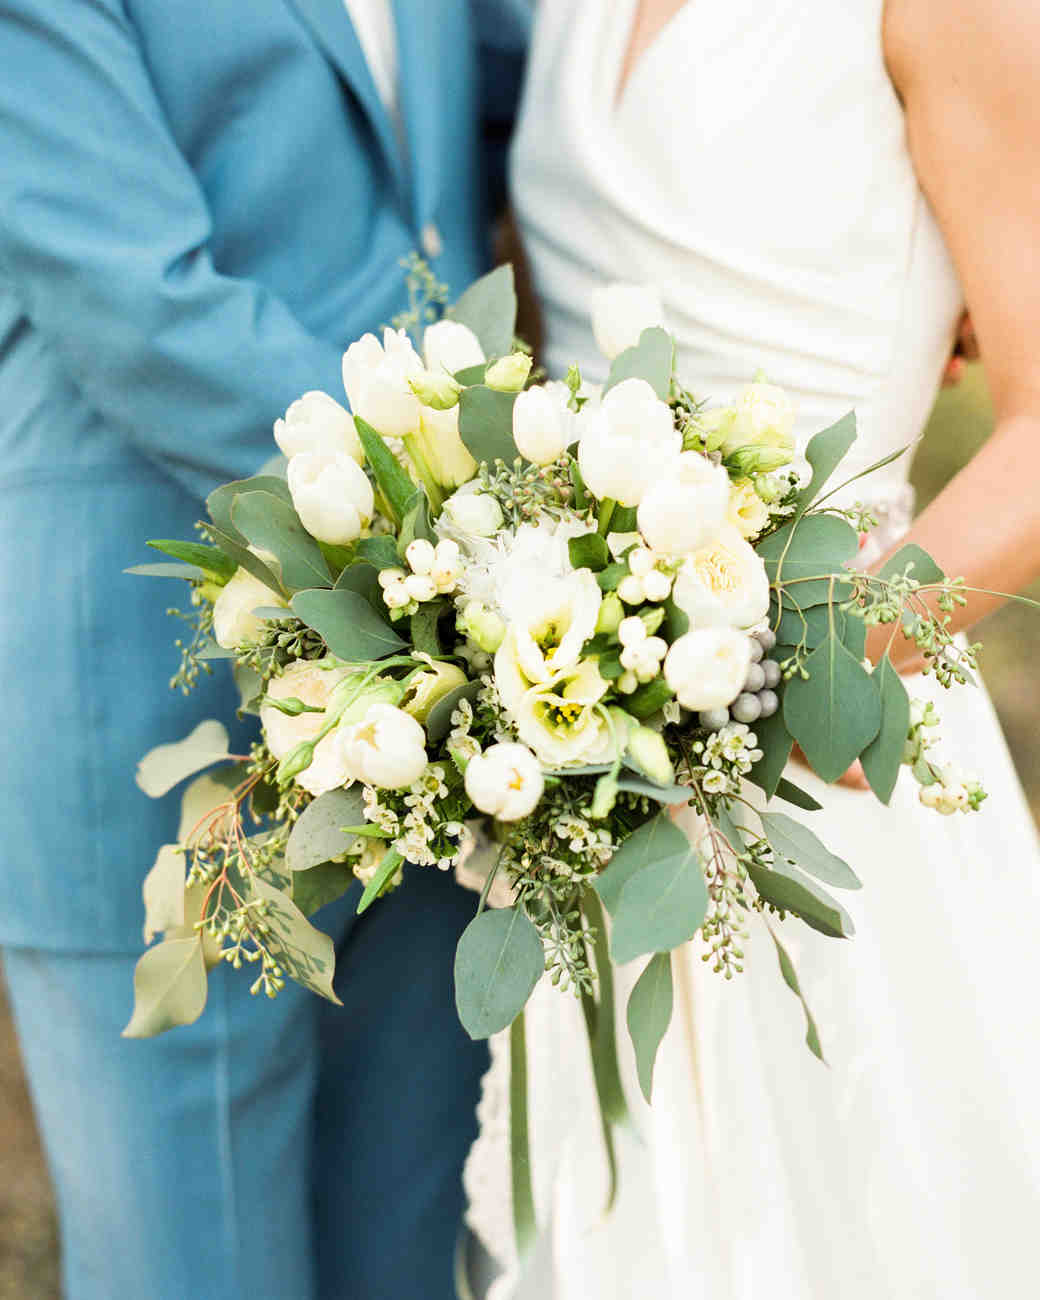 Wedding Bridal Flowers: The 50 Best Wedding Bouquets